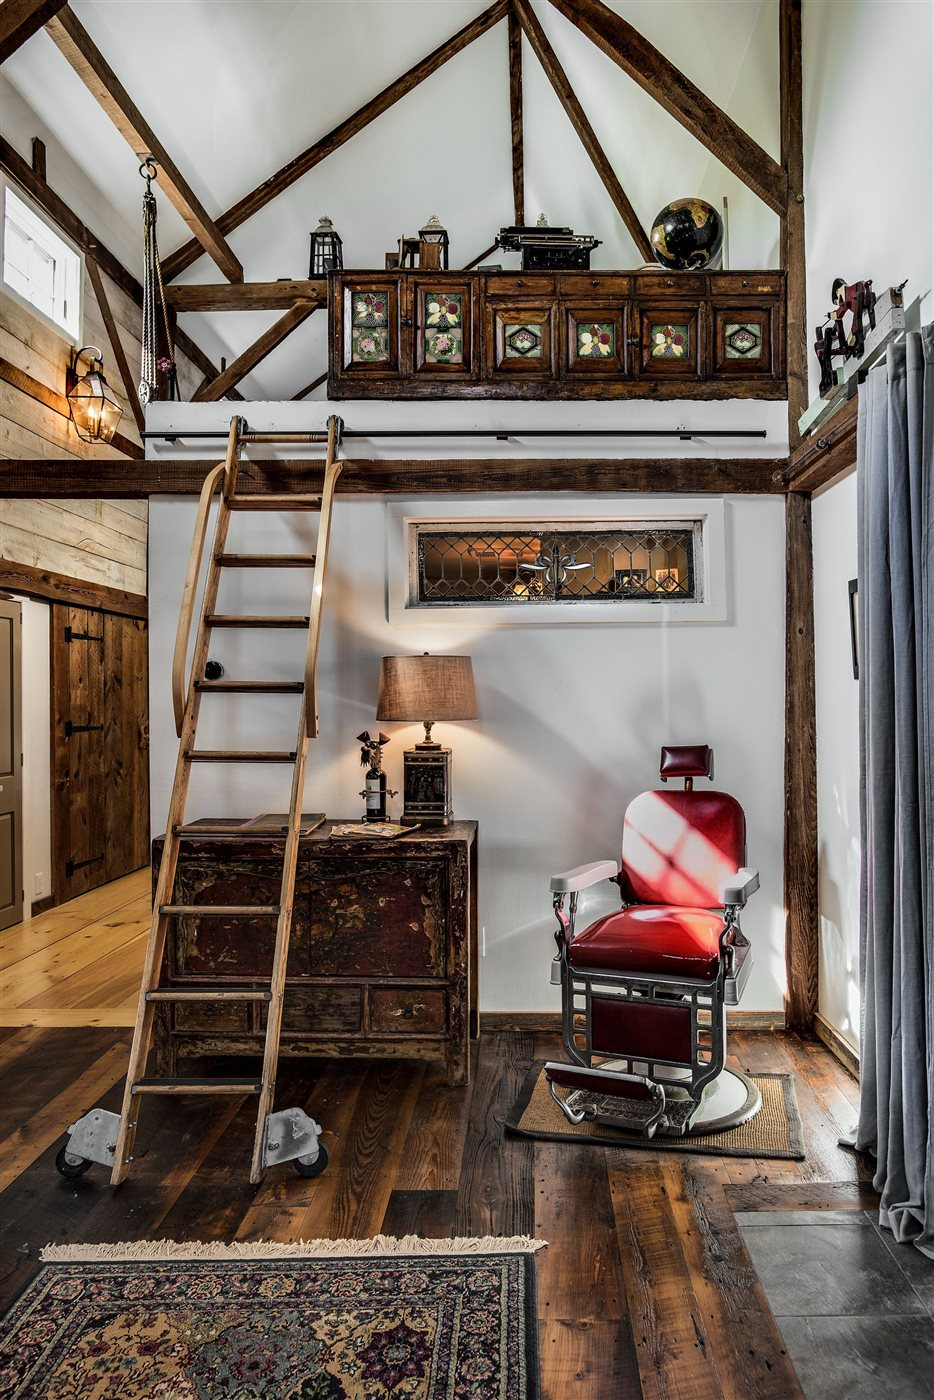 wood rustic interior with ladder and old barber chair in renovated barn